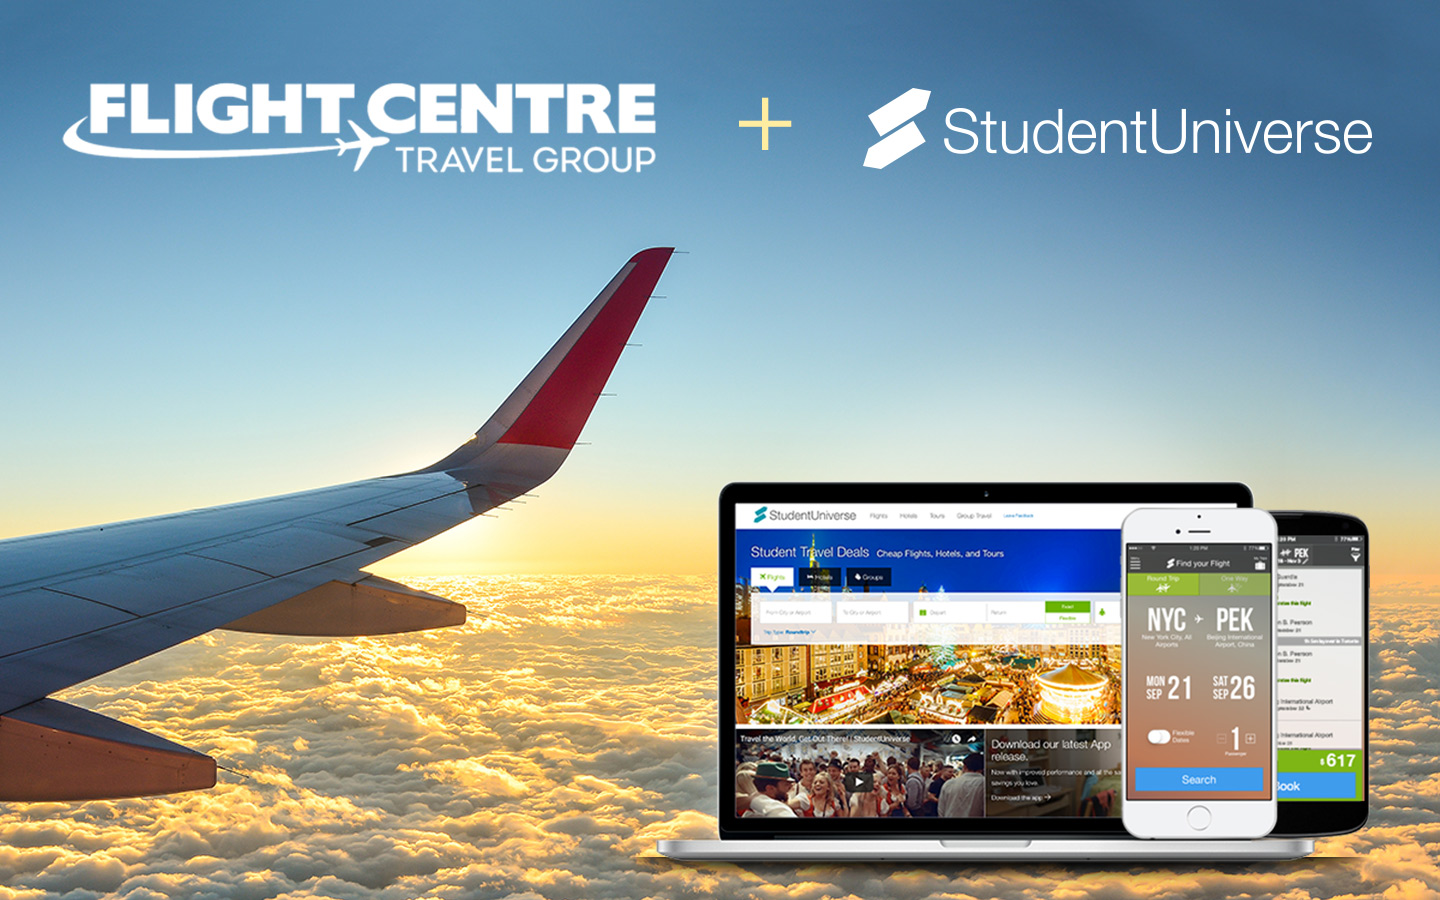 Flight Centre and StudentUniverse